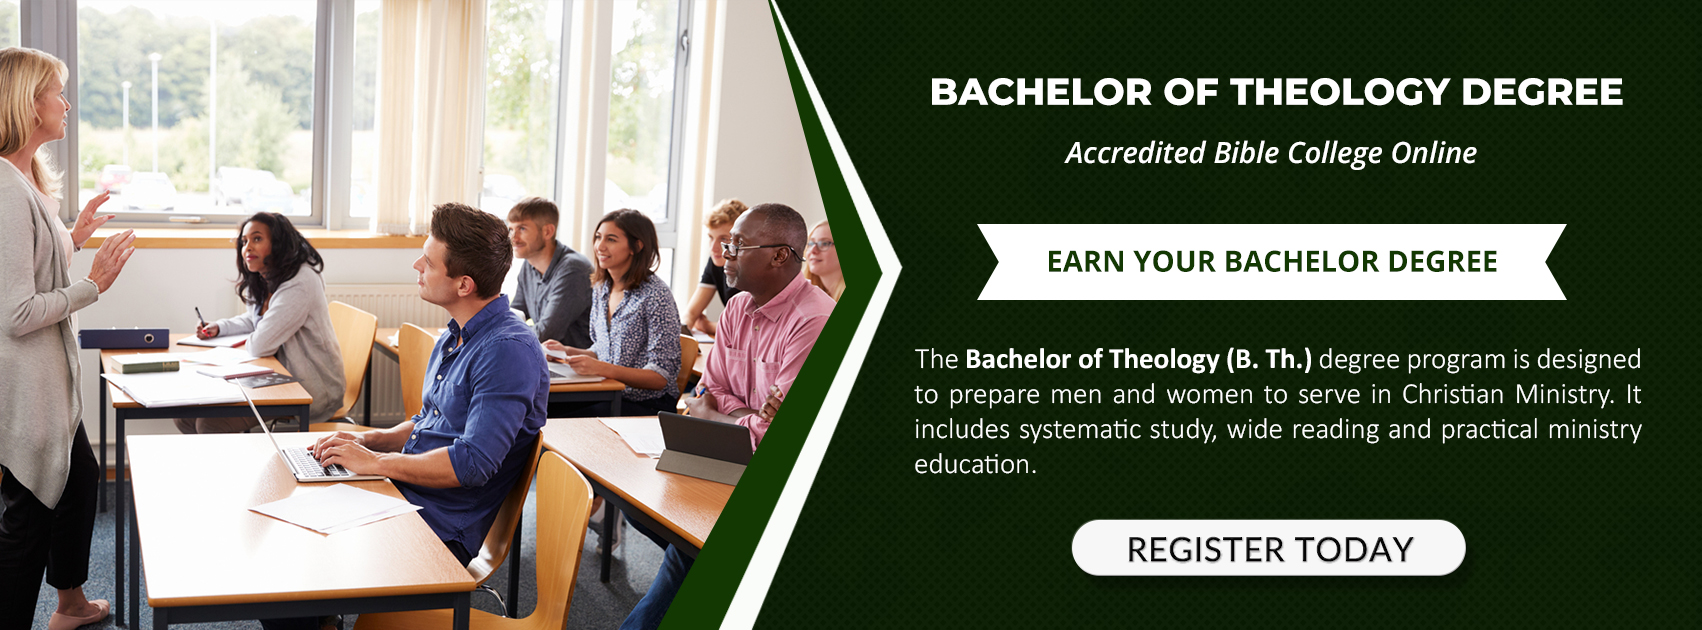 Bachelor of Theology_Bible College Banner.jpg